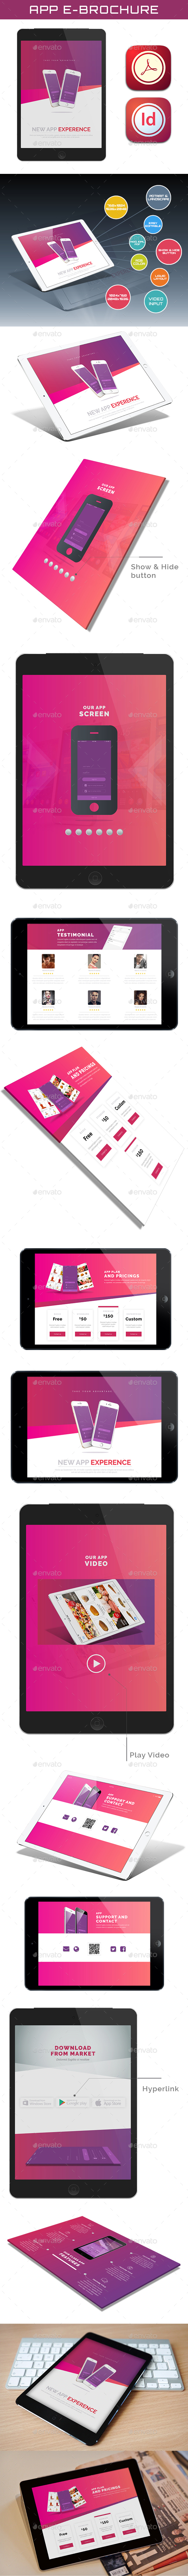 GraphicRiver Mobile App E-brochure 20471234